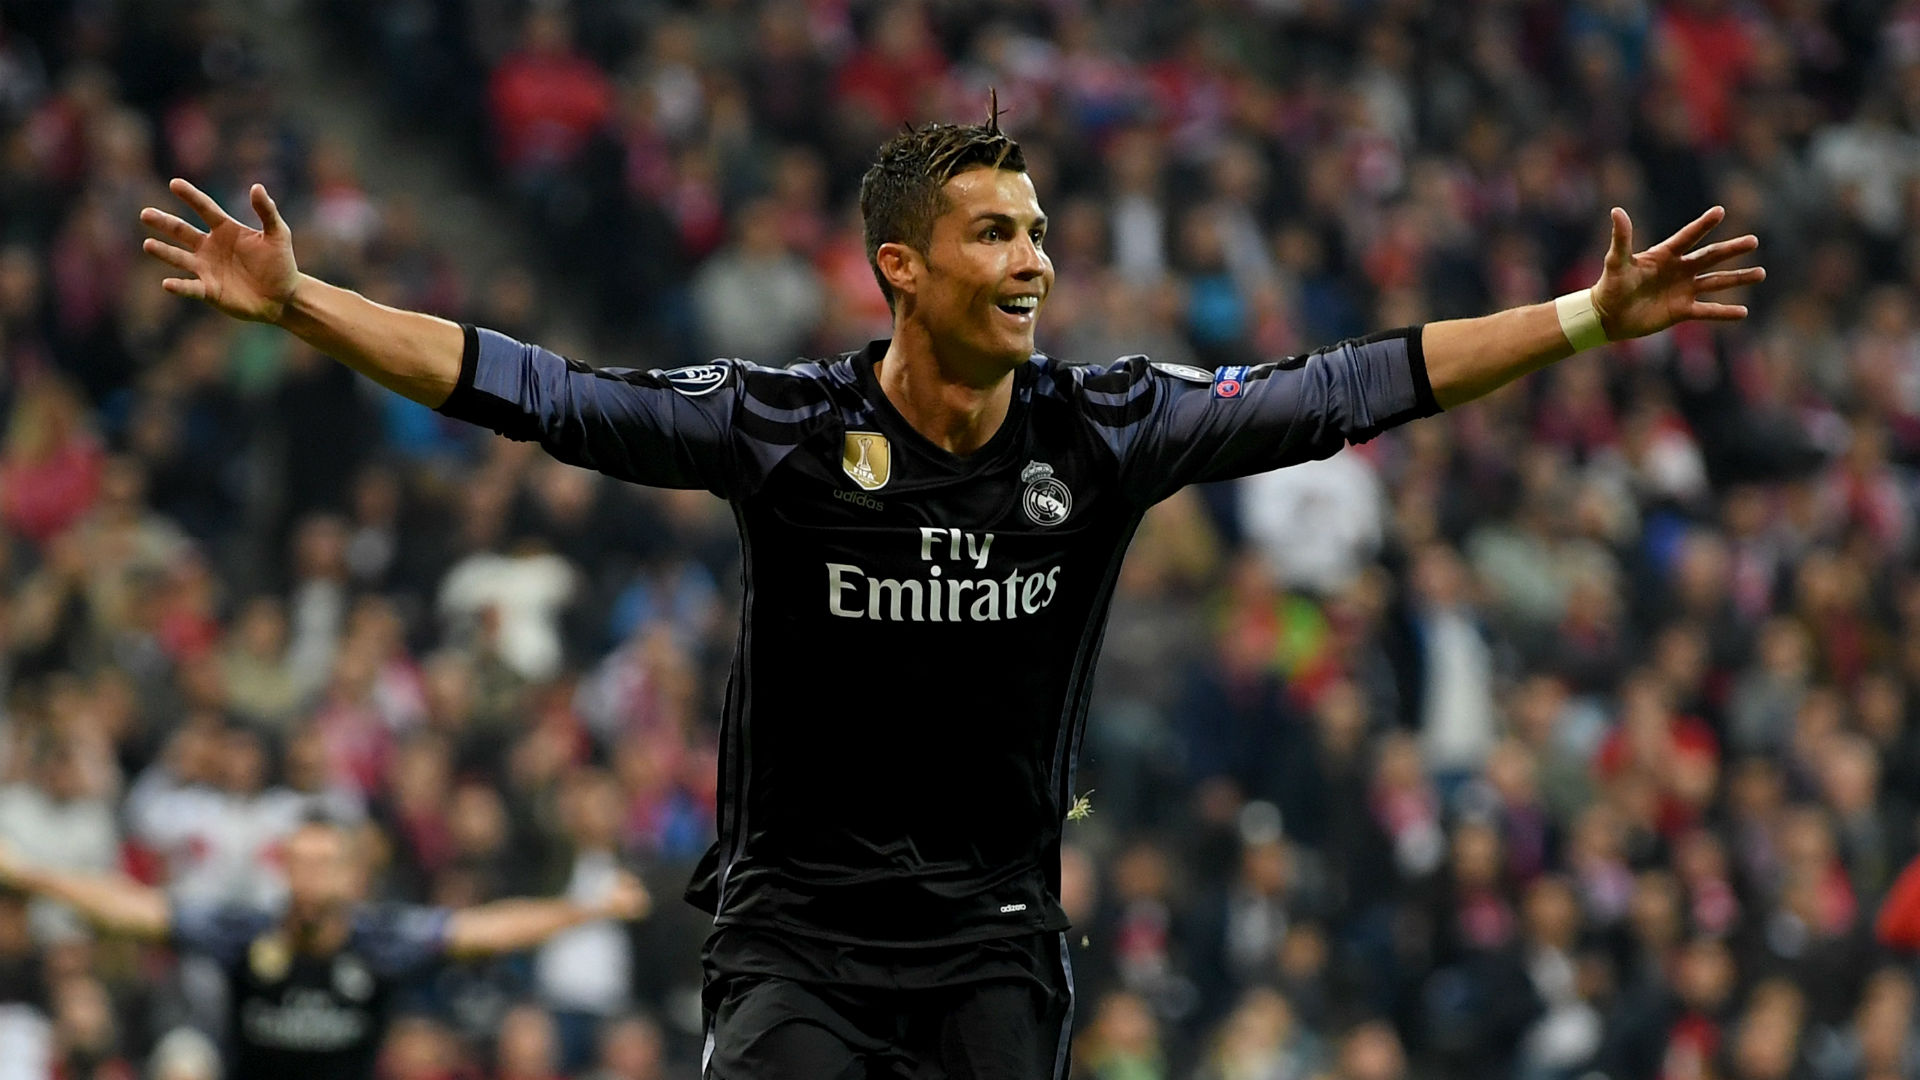 Ronaldo's brace gives Madrid edge over Bayern in CL quarters